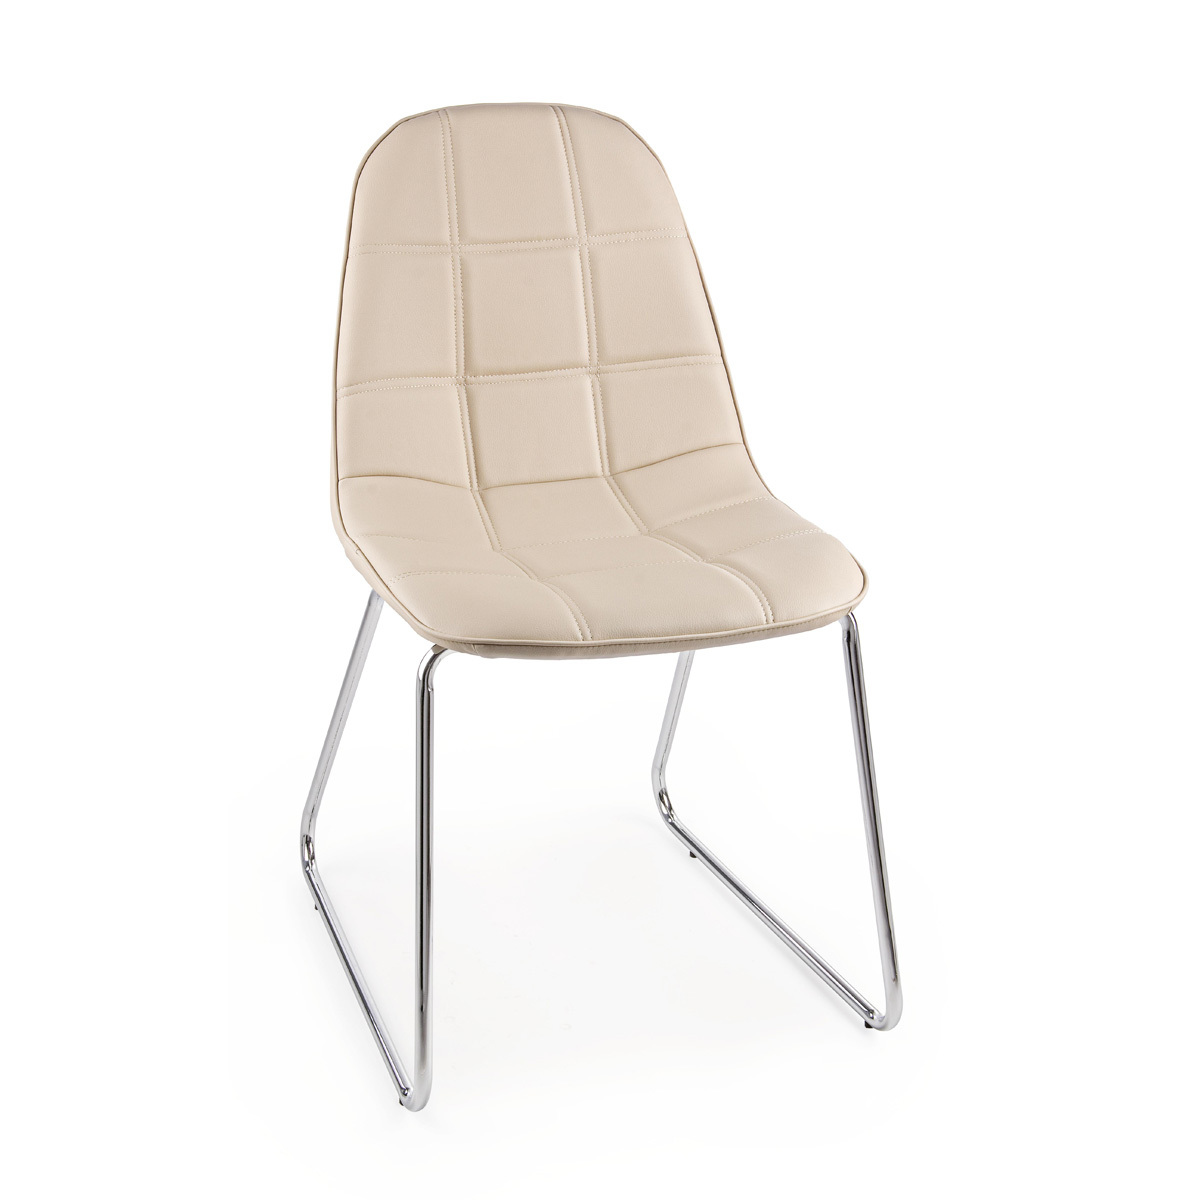 Photos 1: Bizzotto Chair in metal and eco-leather - tortora 0731665